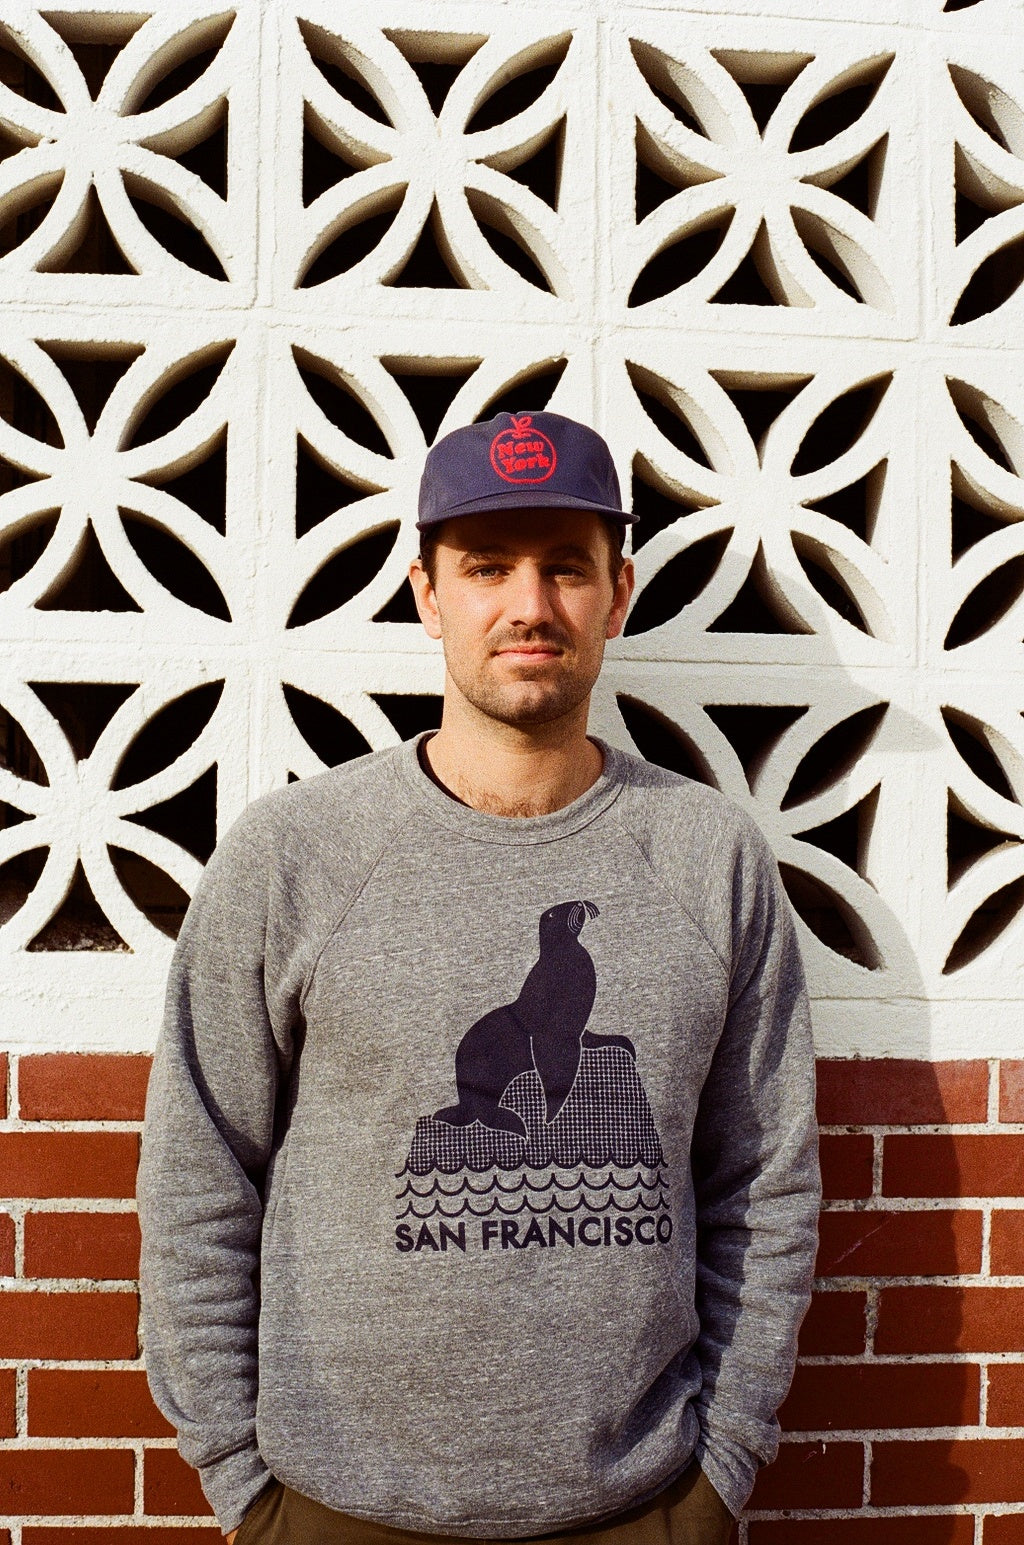 culk san francisco t-shirt